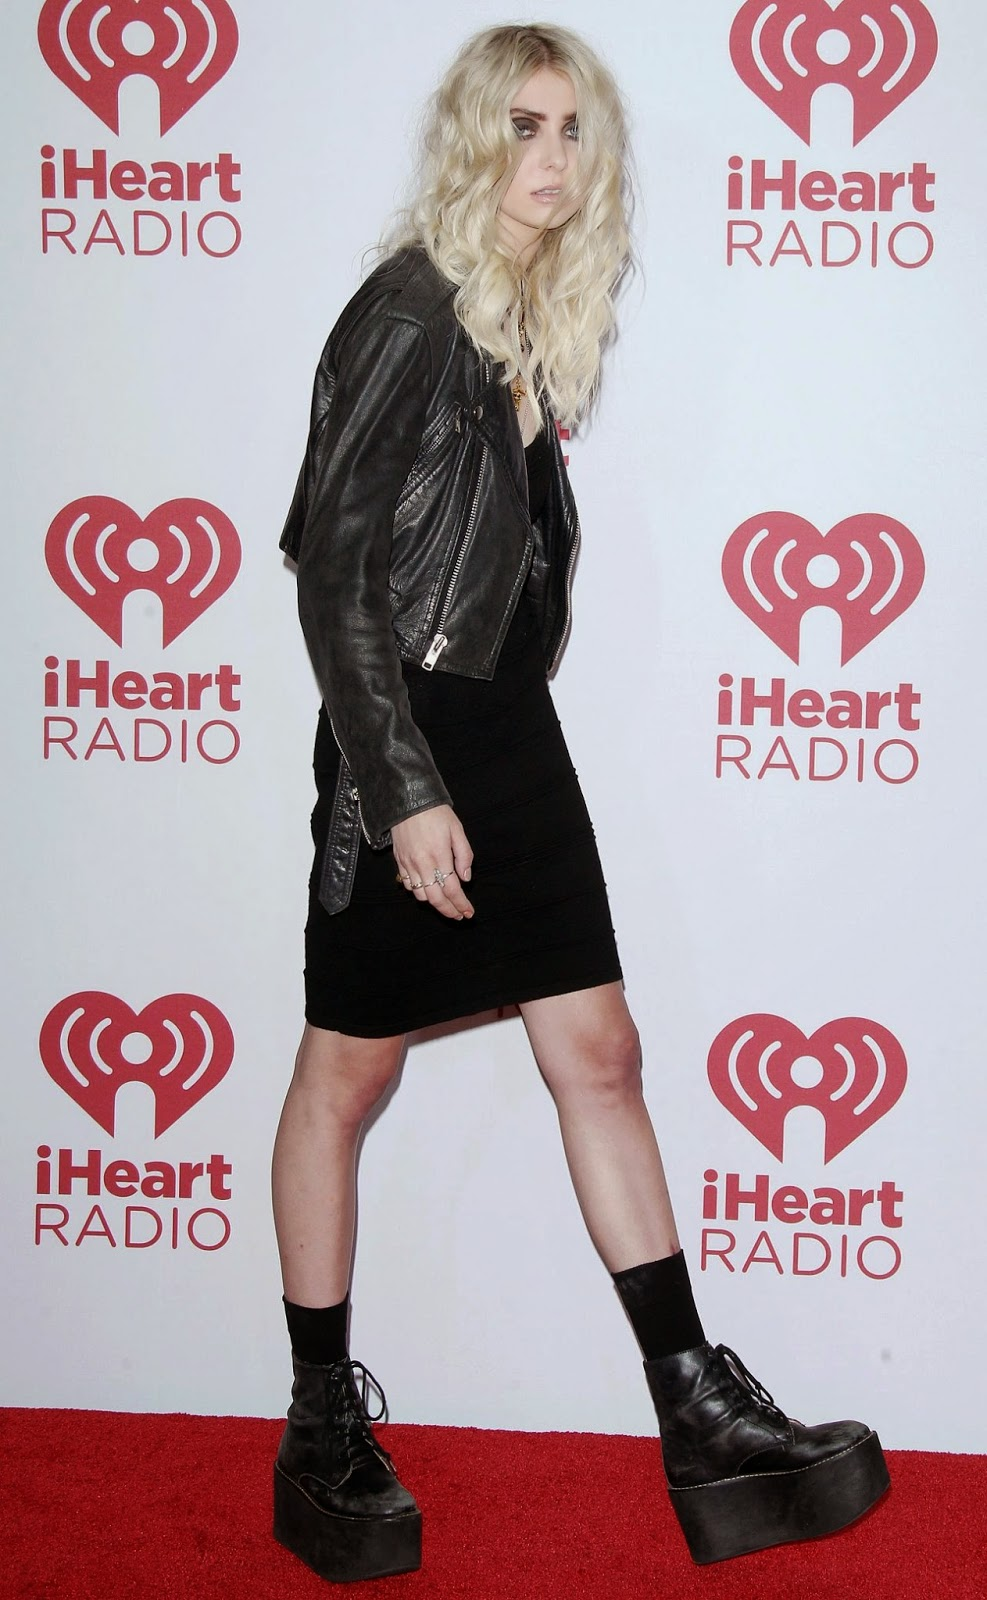 Taylor Momsen goes for a gothic look at the 2014 iHeart Radio Music Awards